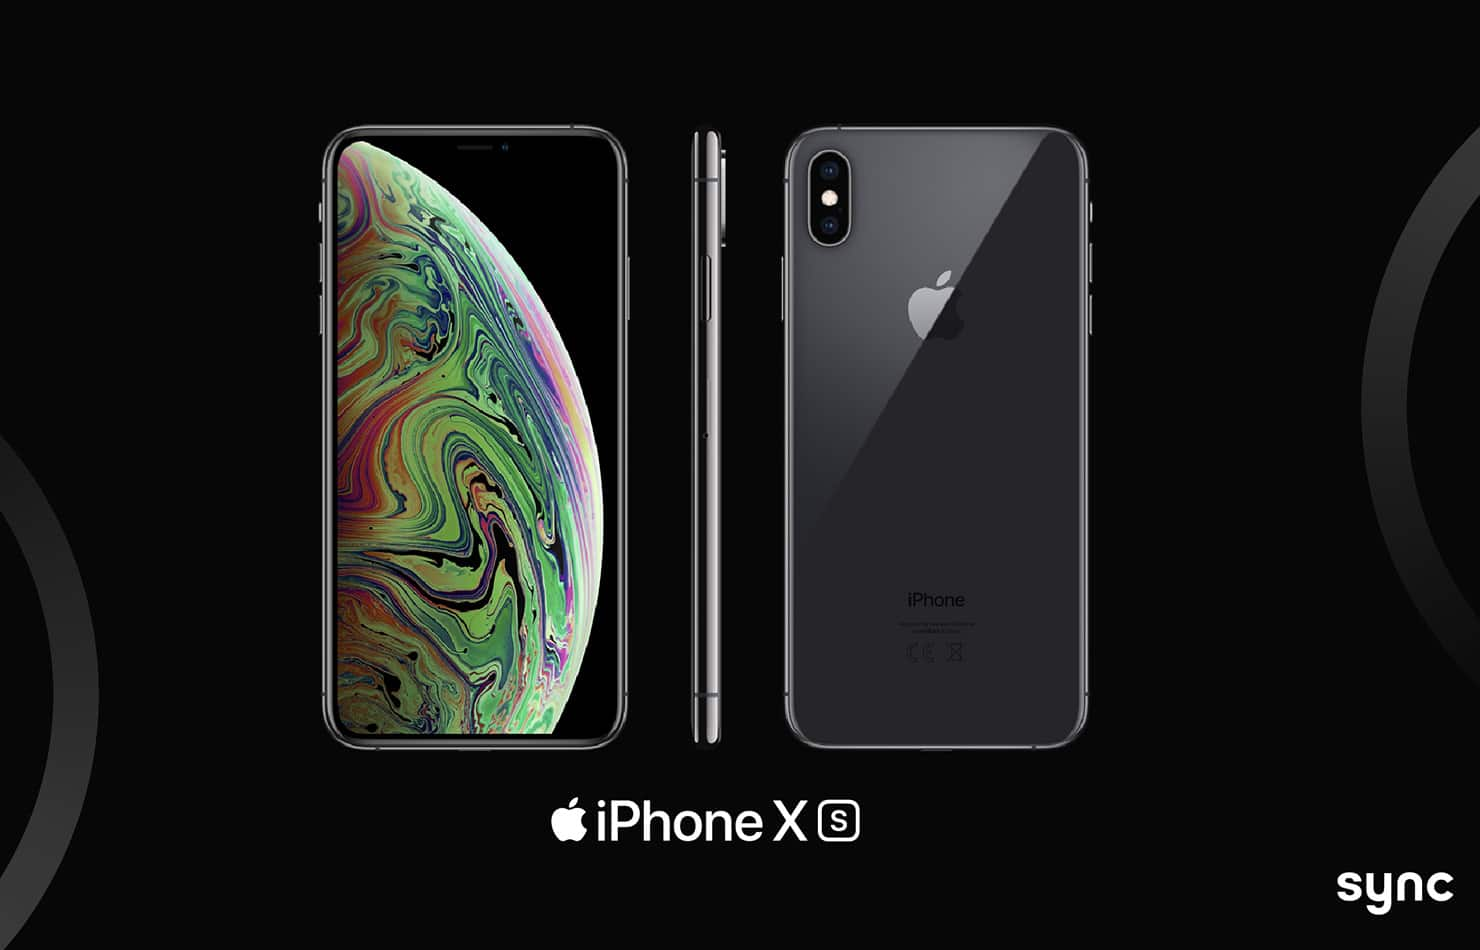 The new iPhone Xs and iPhone Xs Max